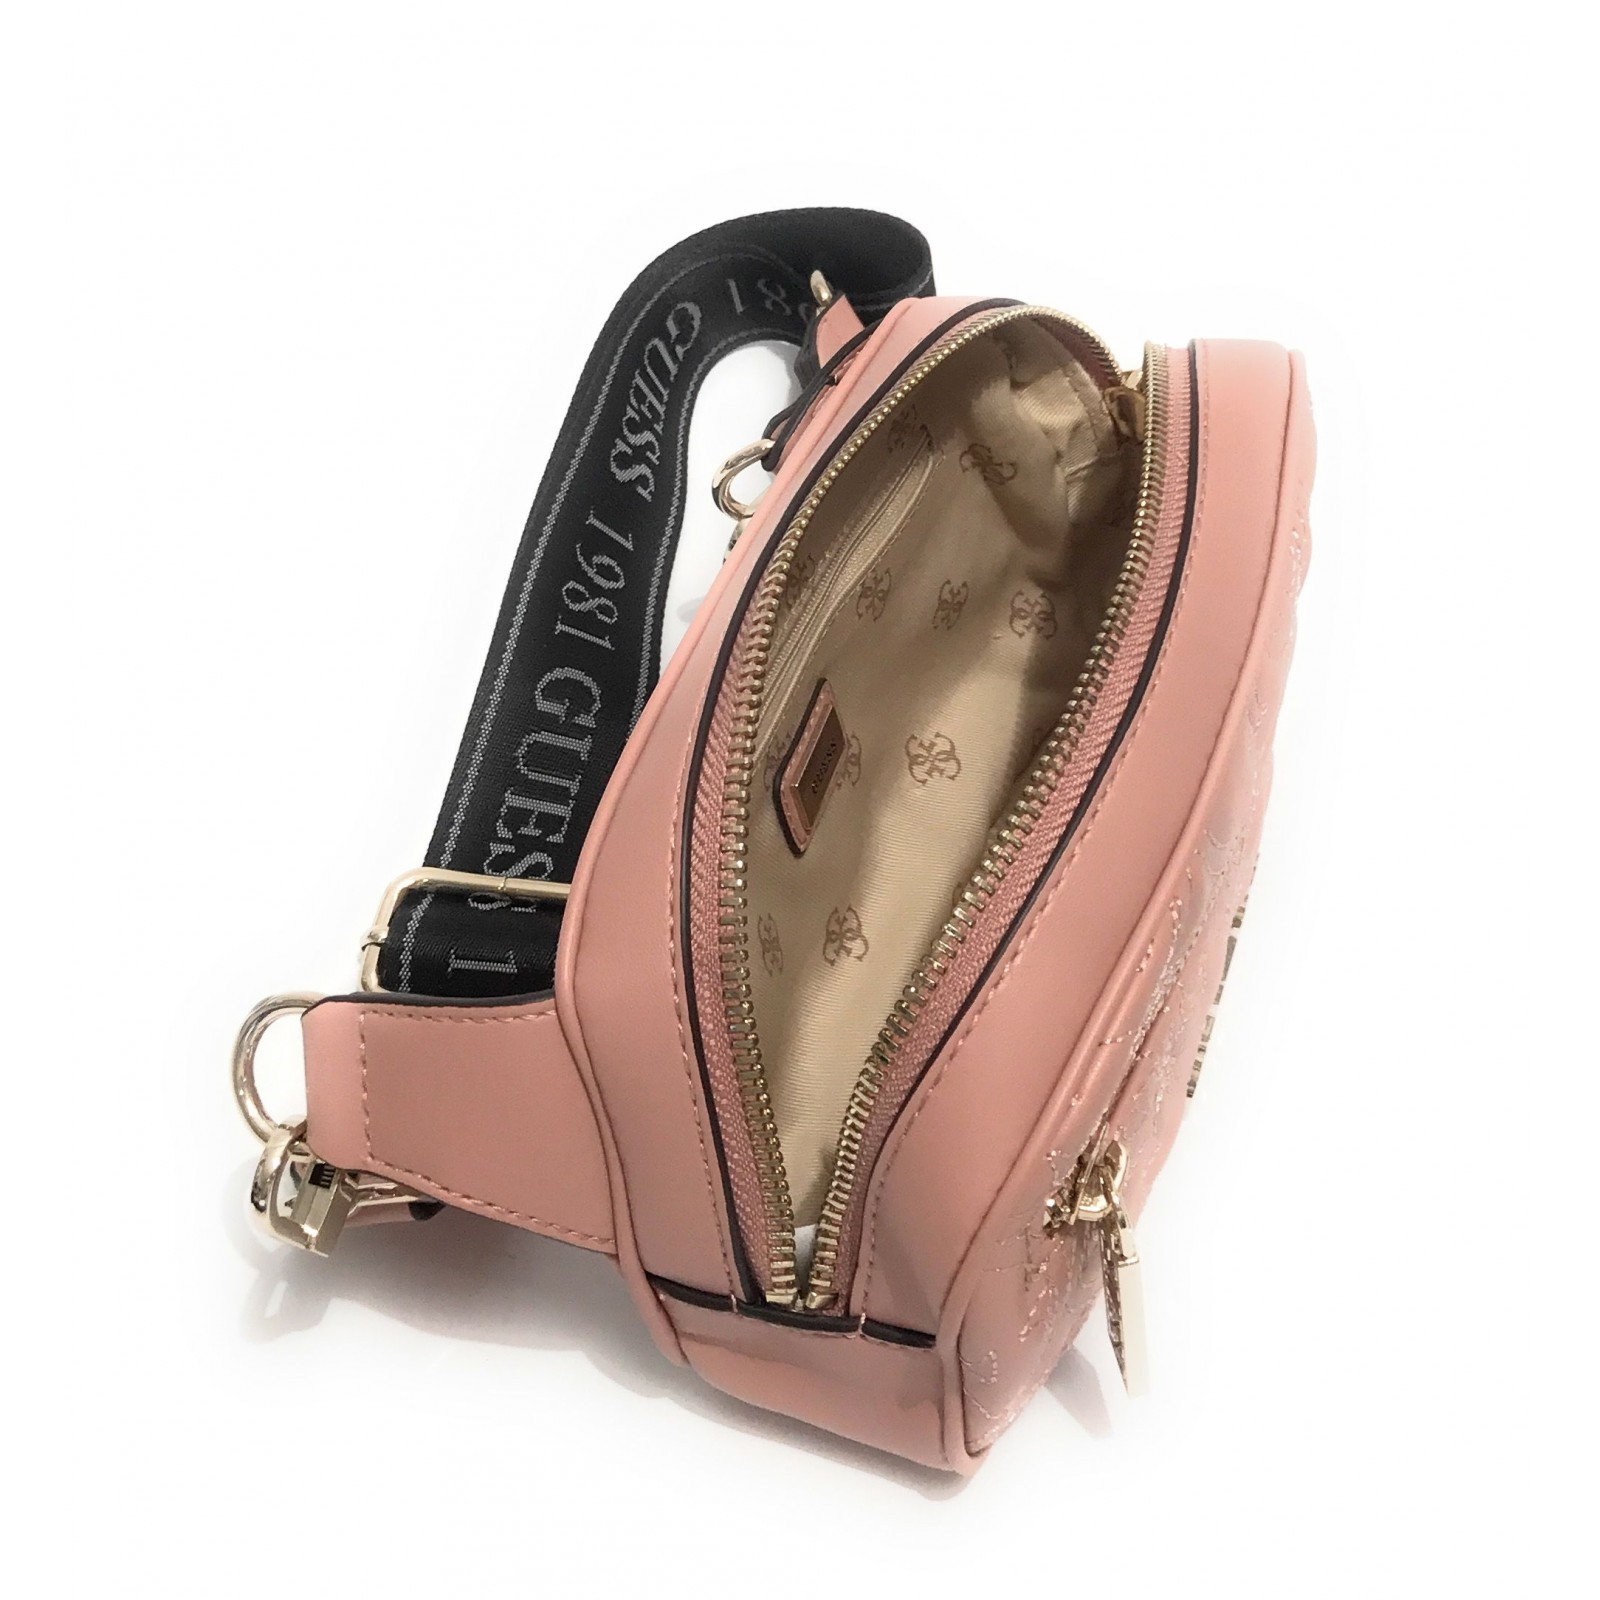 Borsa Guess marsupio Guess Manhattan mini Belt Bag ecopelle rosa blush multi logo trapuntato BS20GU160